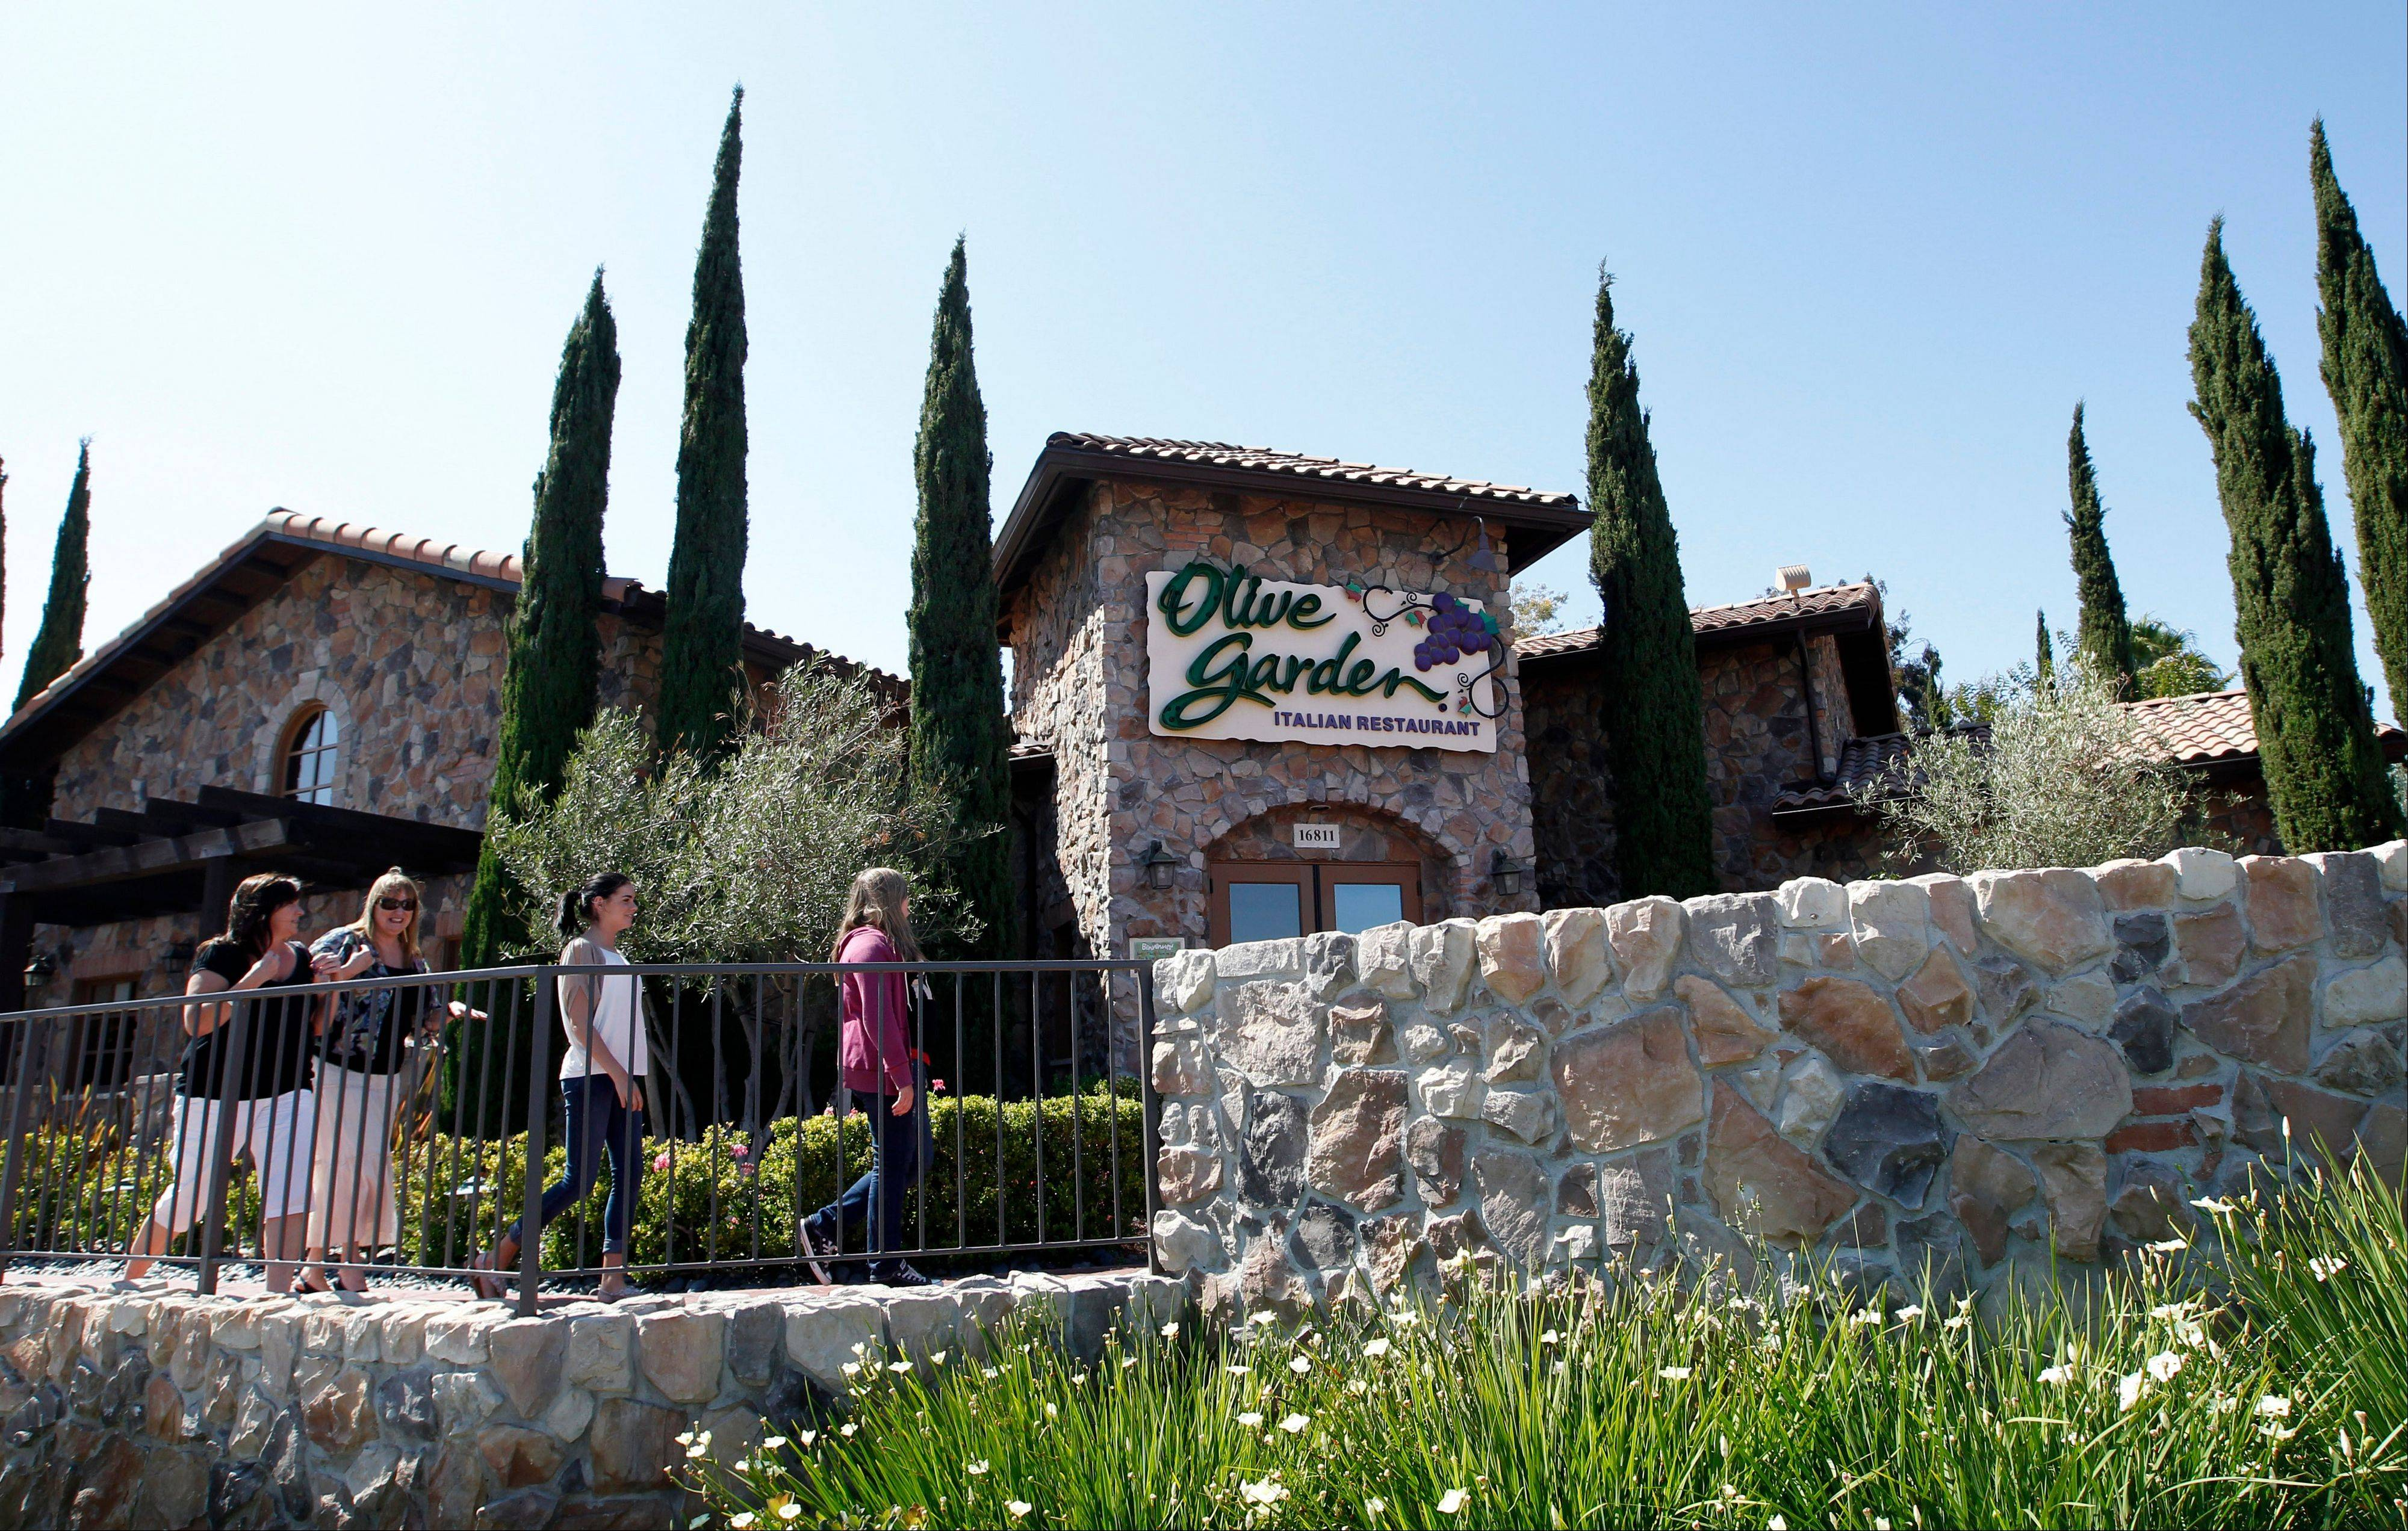 Fiscal fourth quarter earnings for Darden Restaurants Inc. climbed 10 percent as new restaurant revenue helped balance a decline from established Olive Garden and Red Lobster locations. The Orlando, Fla., company also said Friday, June 22, 2012, it will raise the quarterly dividend it pays shareholders by 16 percent.